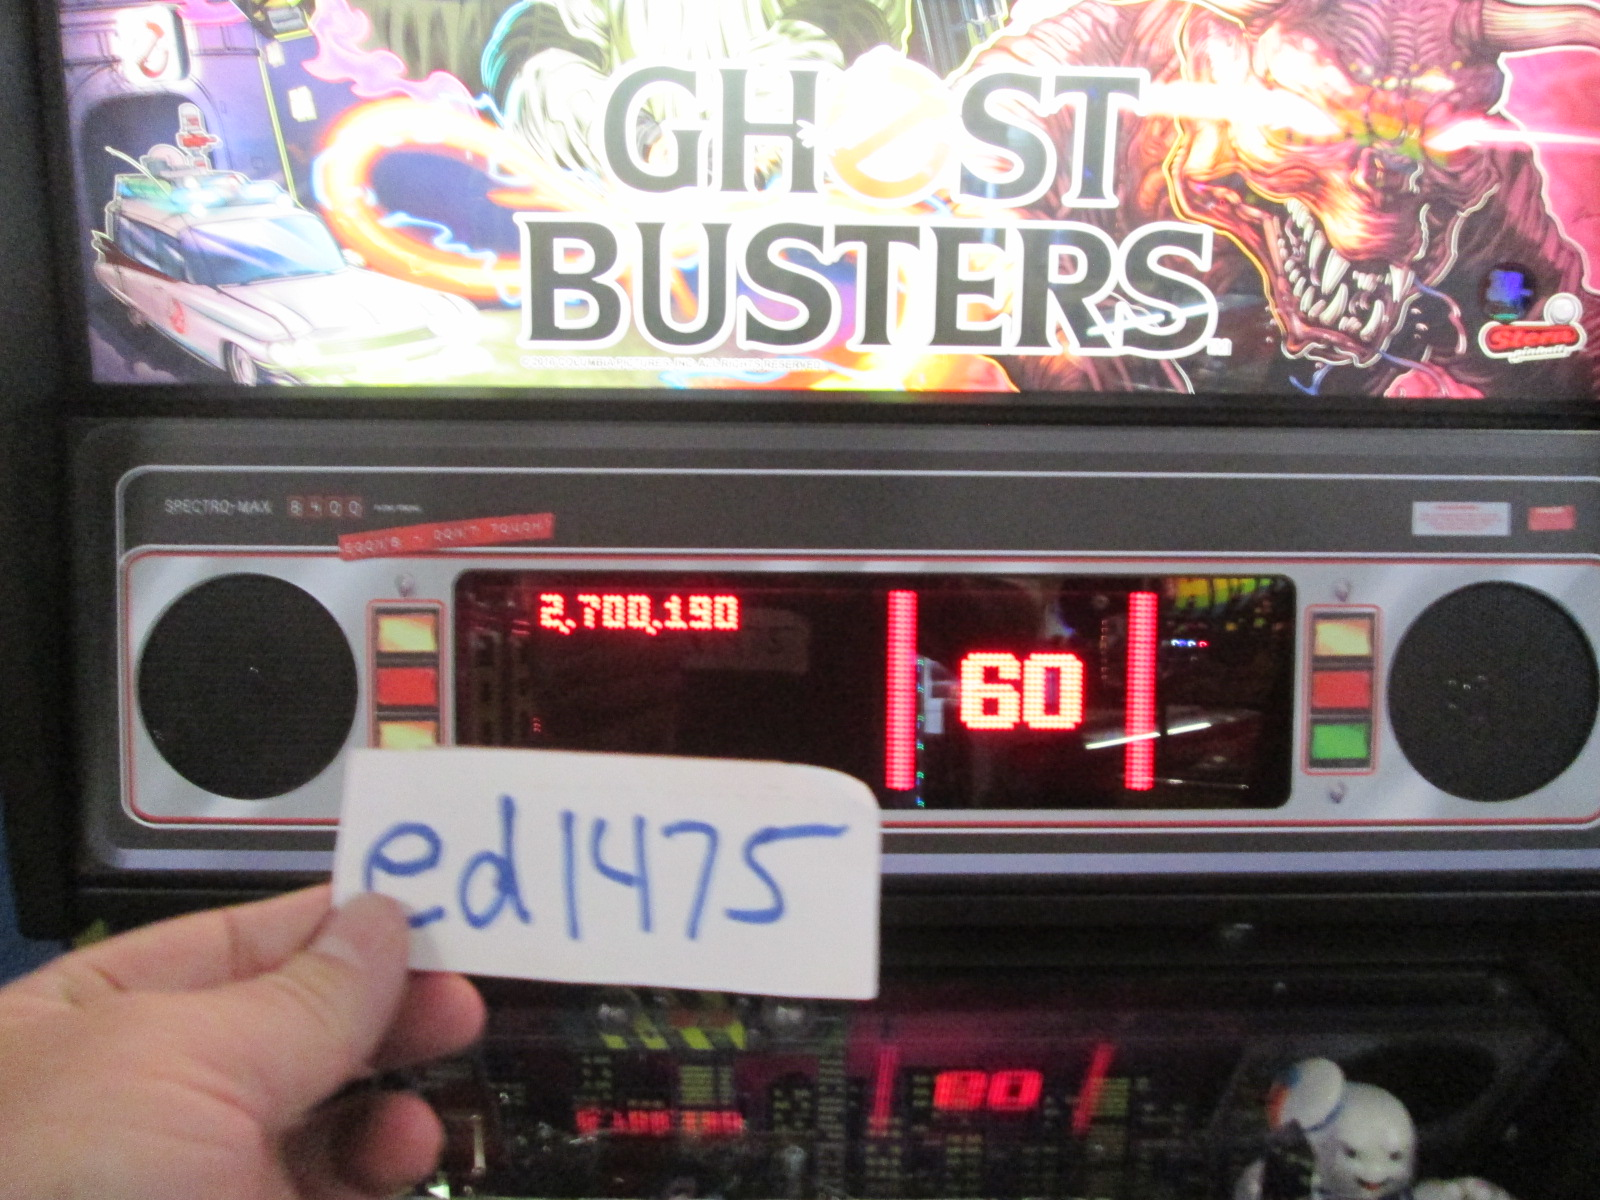 ed1475: Ghostbusters (Pinball: 3 Balls) 2,700,190 points on 2016-08-25 18:53:23